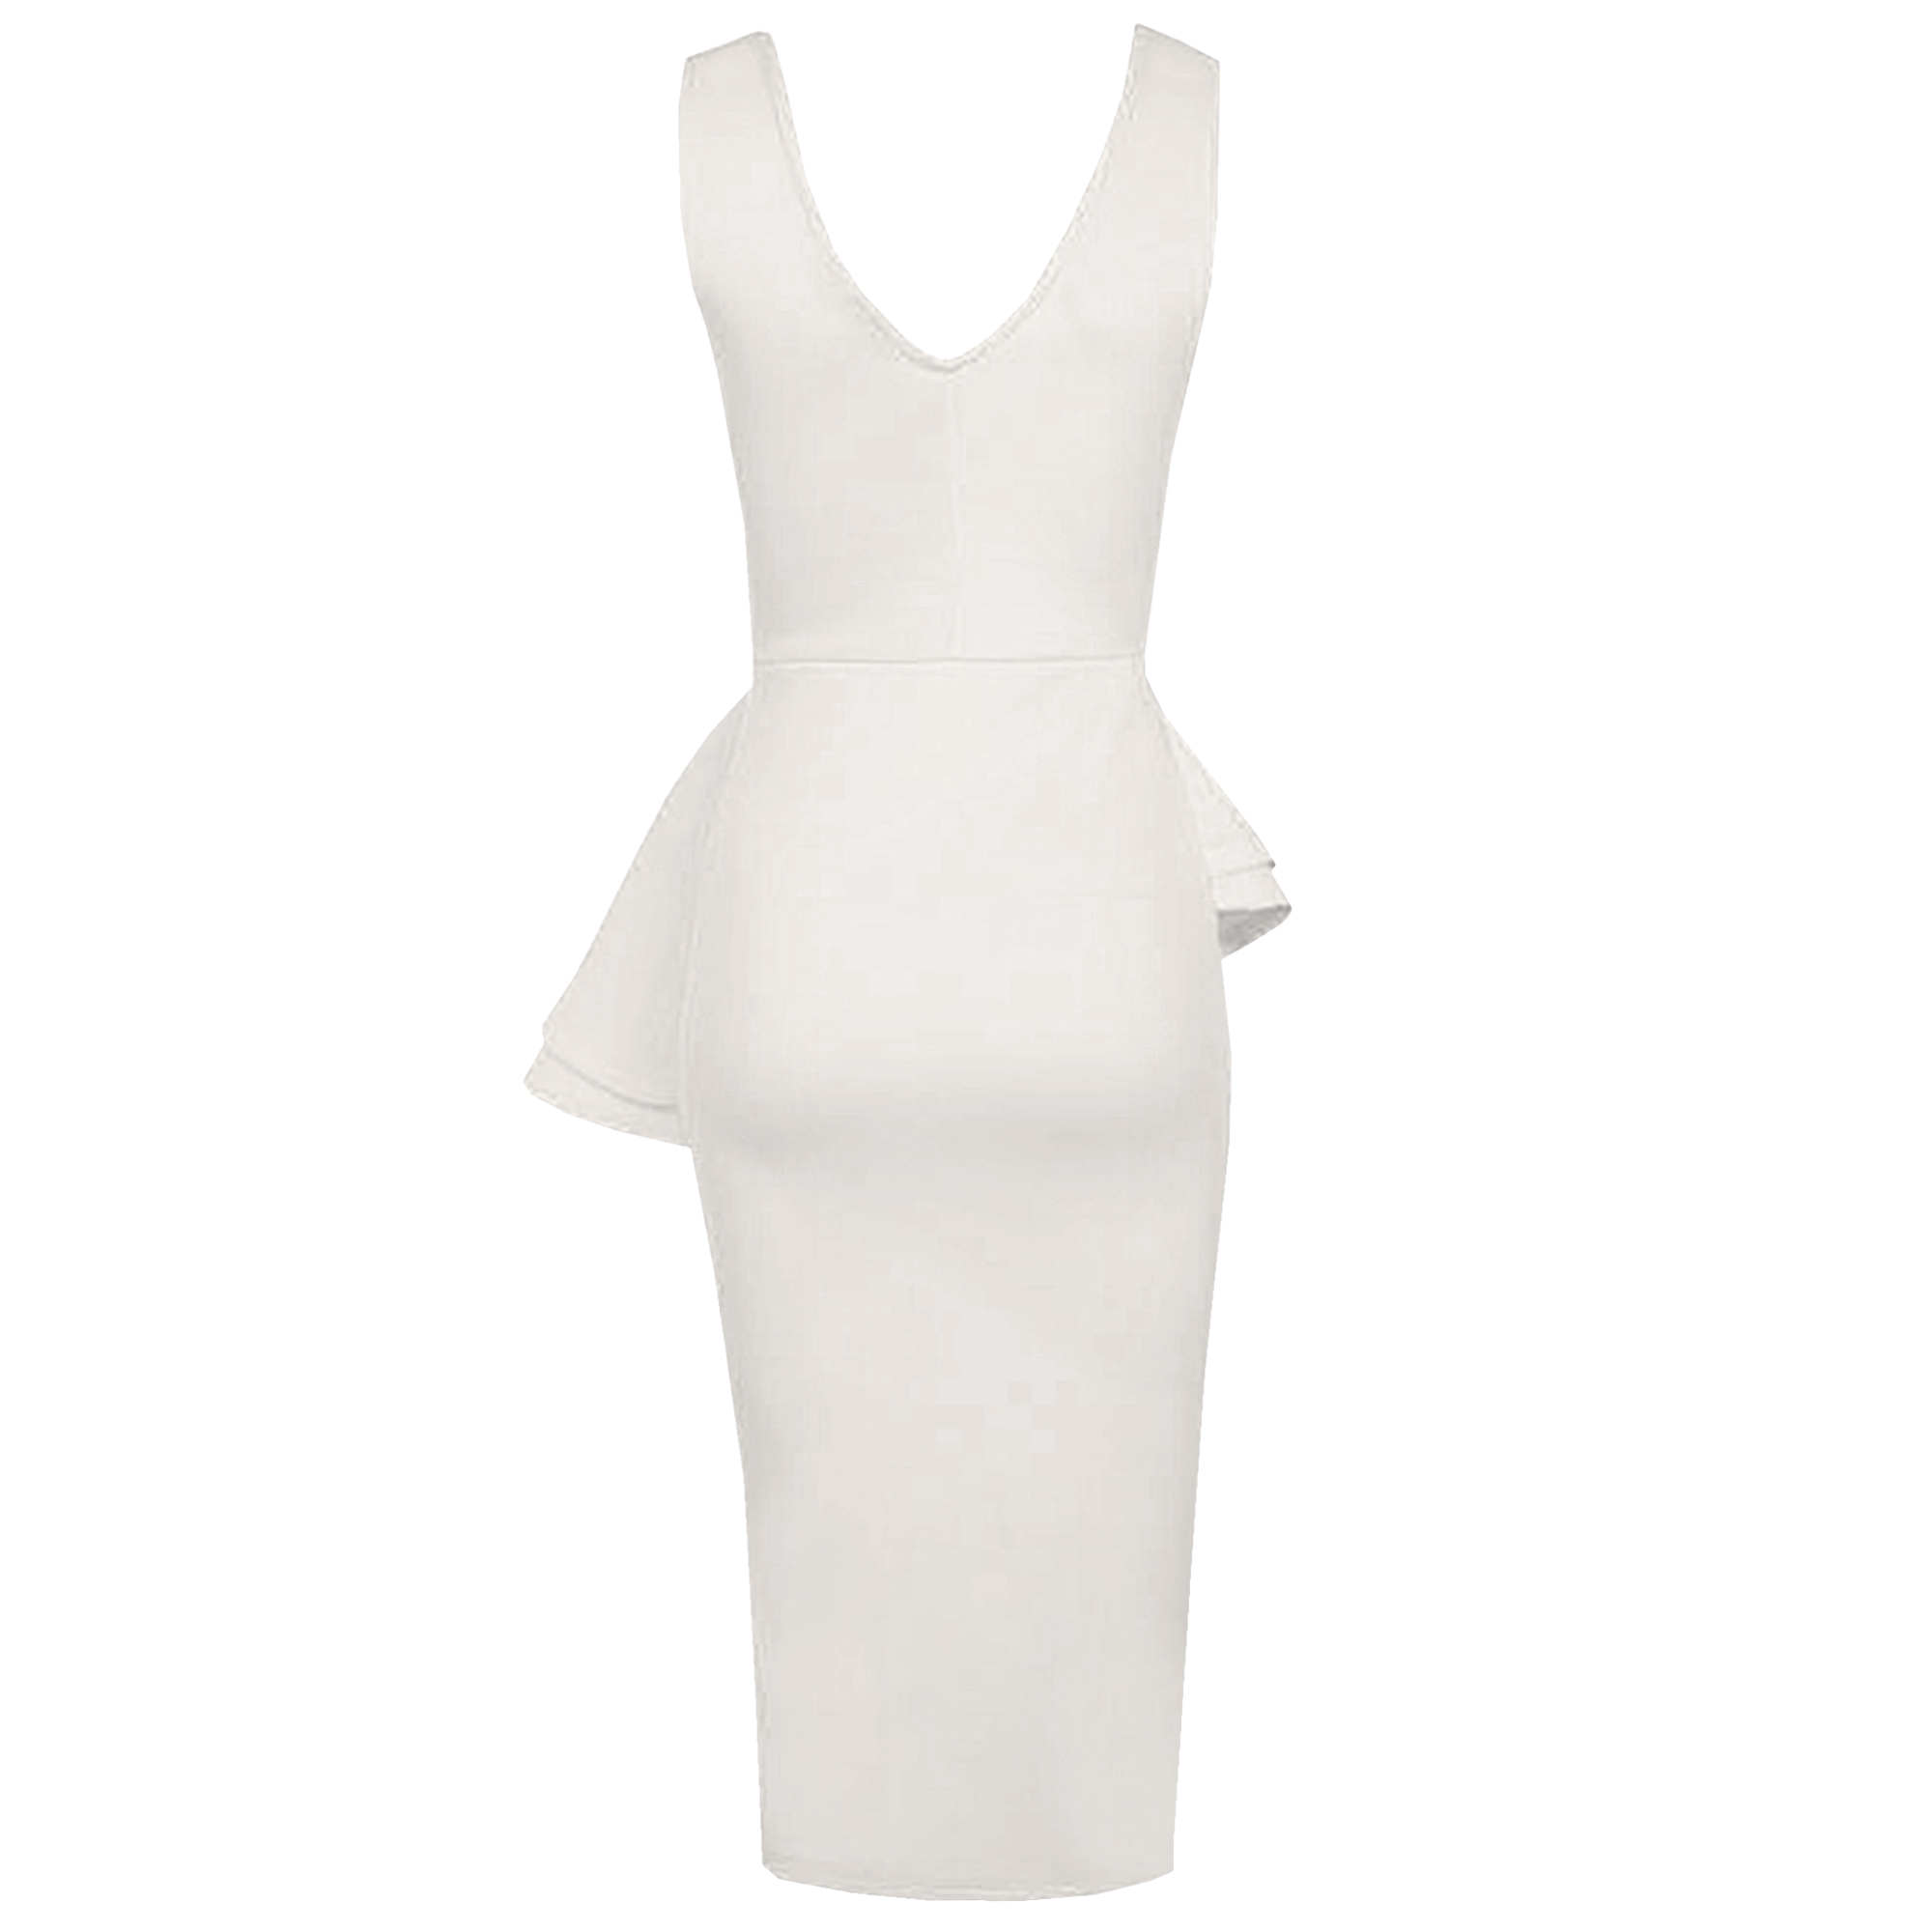 LADIES-SLEEVELESS-SIDE-SLANT-PEPLUM-FRILL-MIDI-DRESS-WOMEN-BODYCON-PENCIL-SKIRT